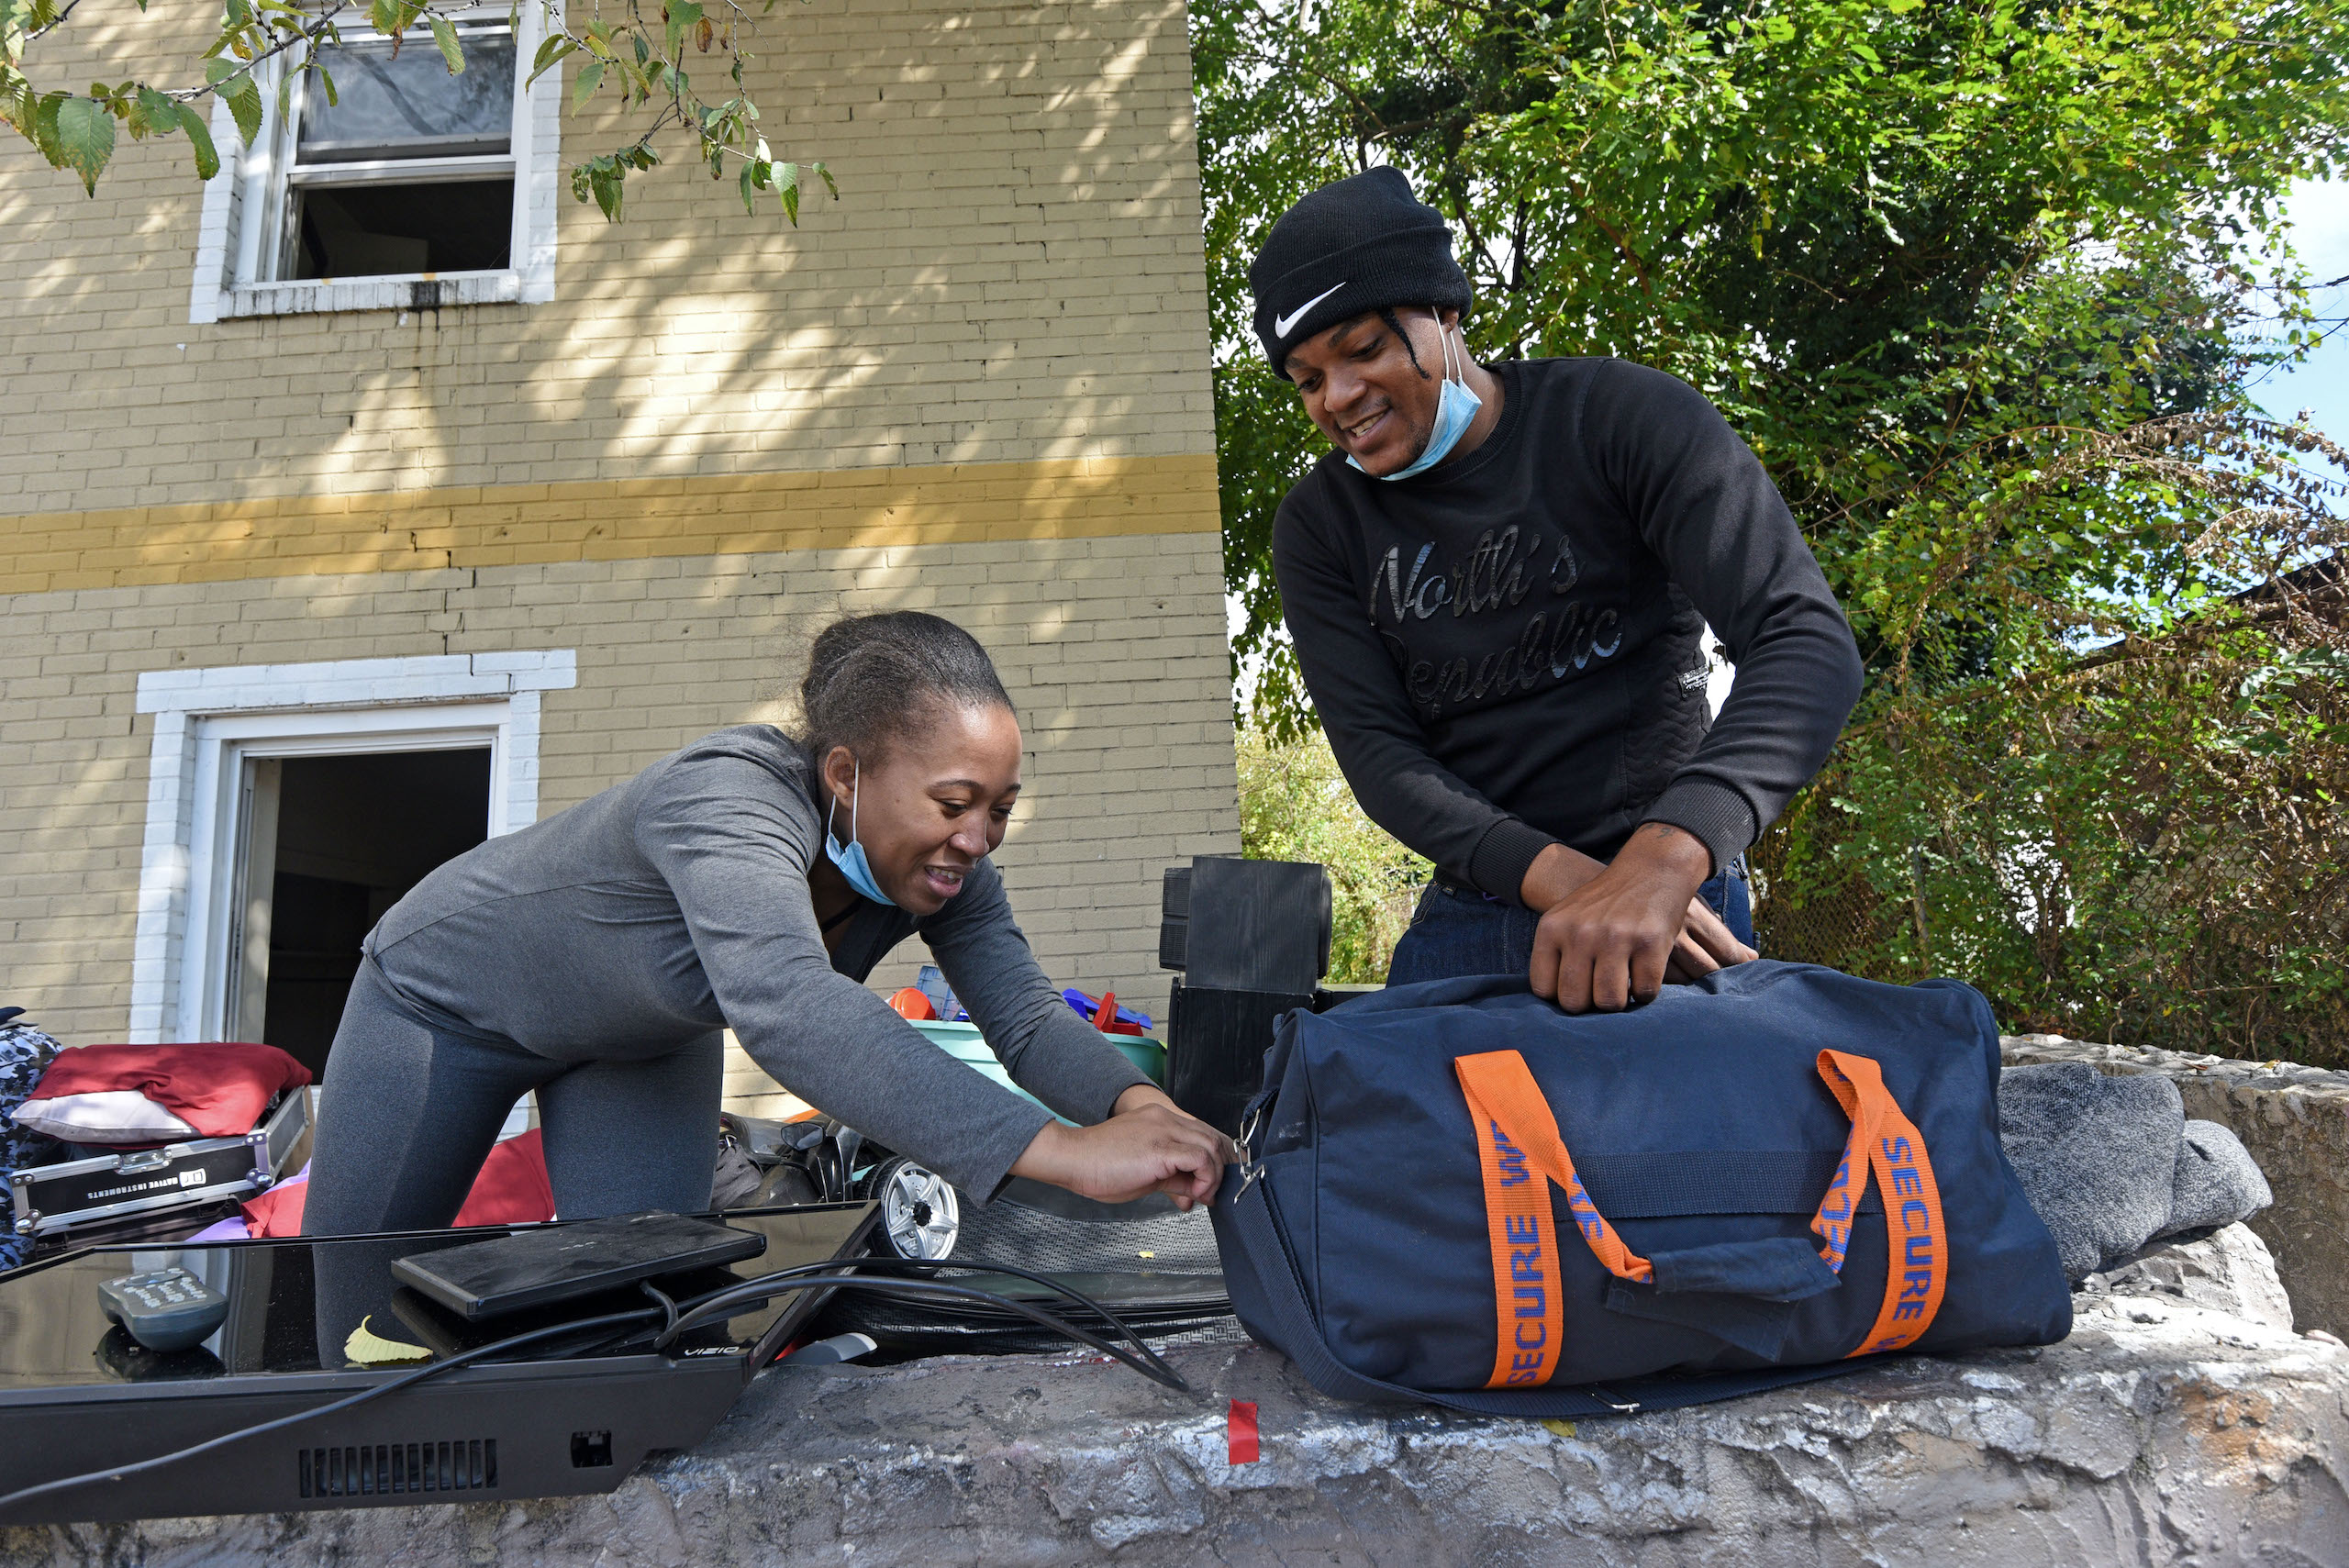 Dehna Morris and Elton Mundle remove belongings from their apartment